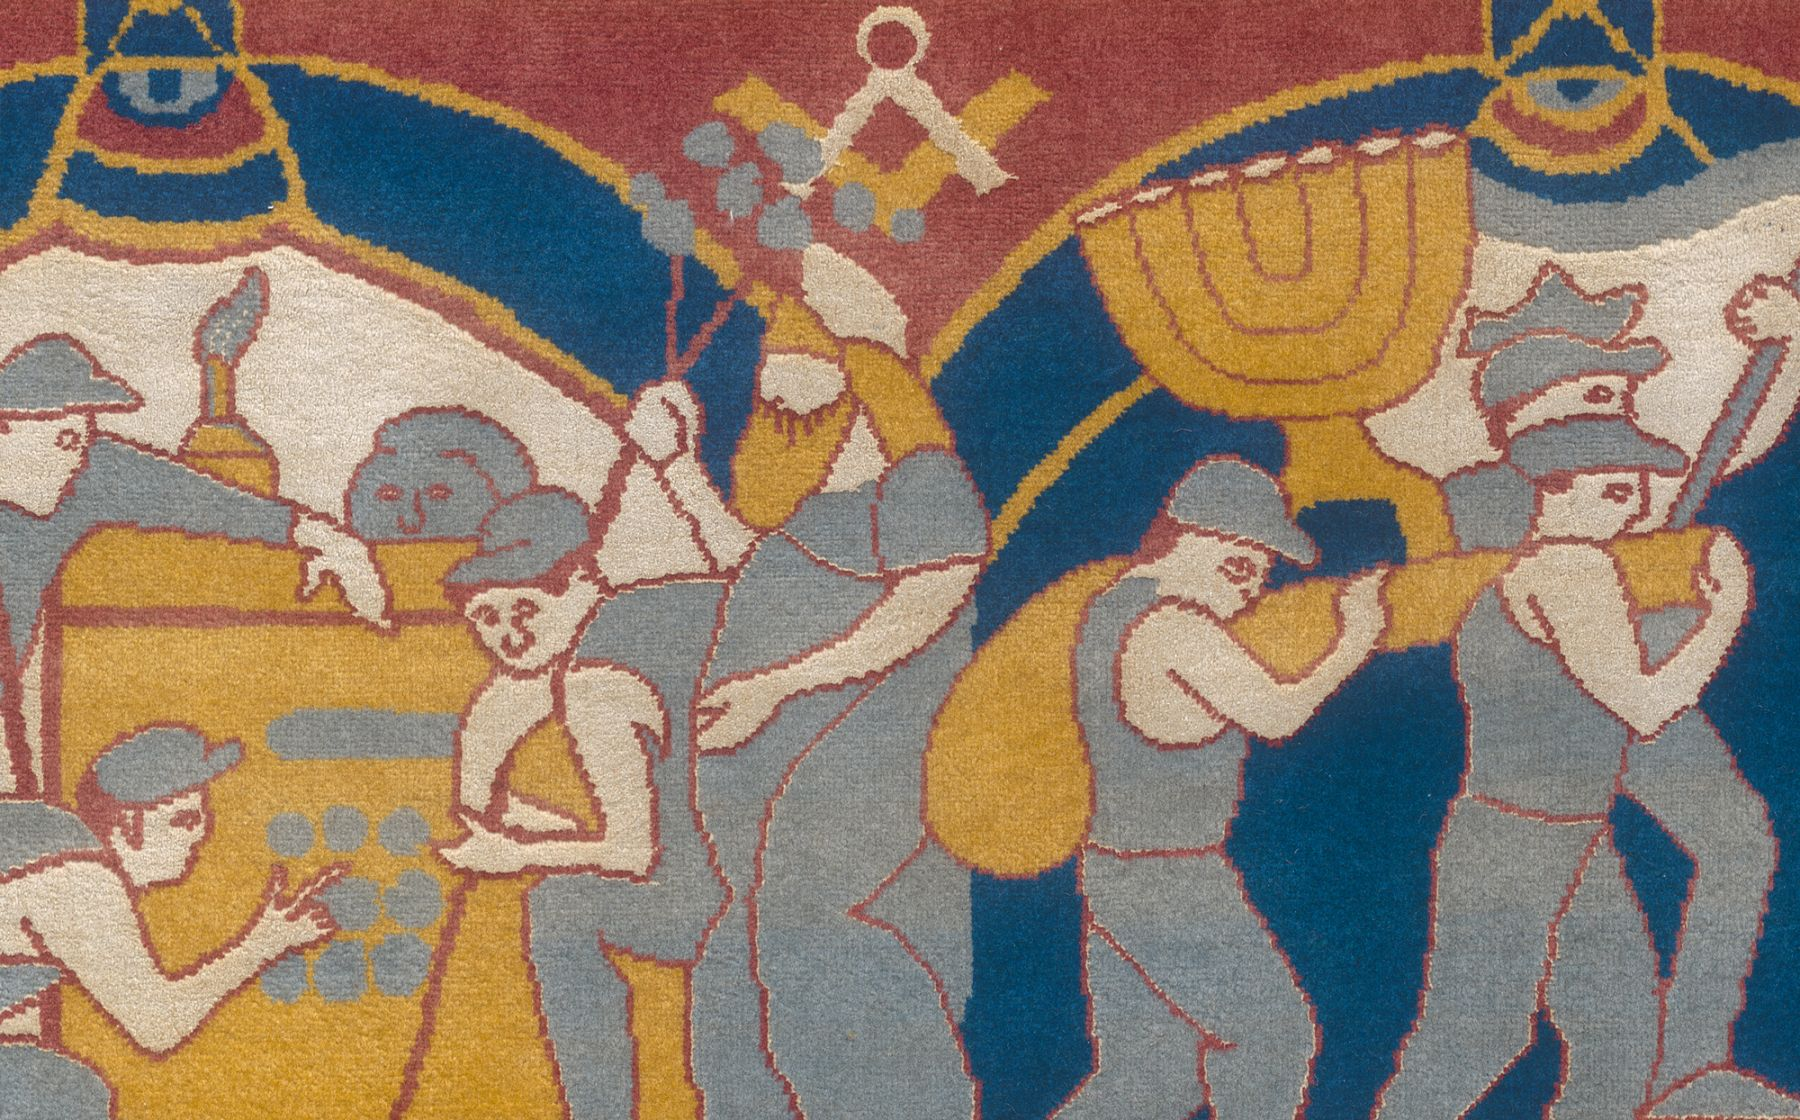 IDO MICHAELI, Bank Hapoalim Carpet (detail), 2015